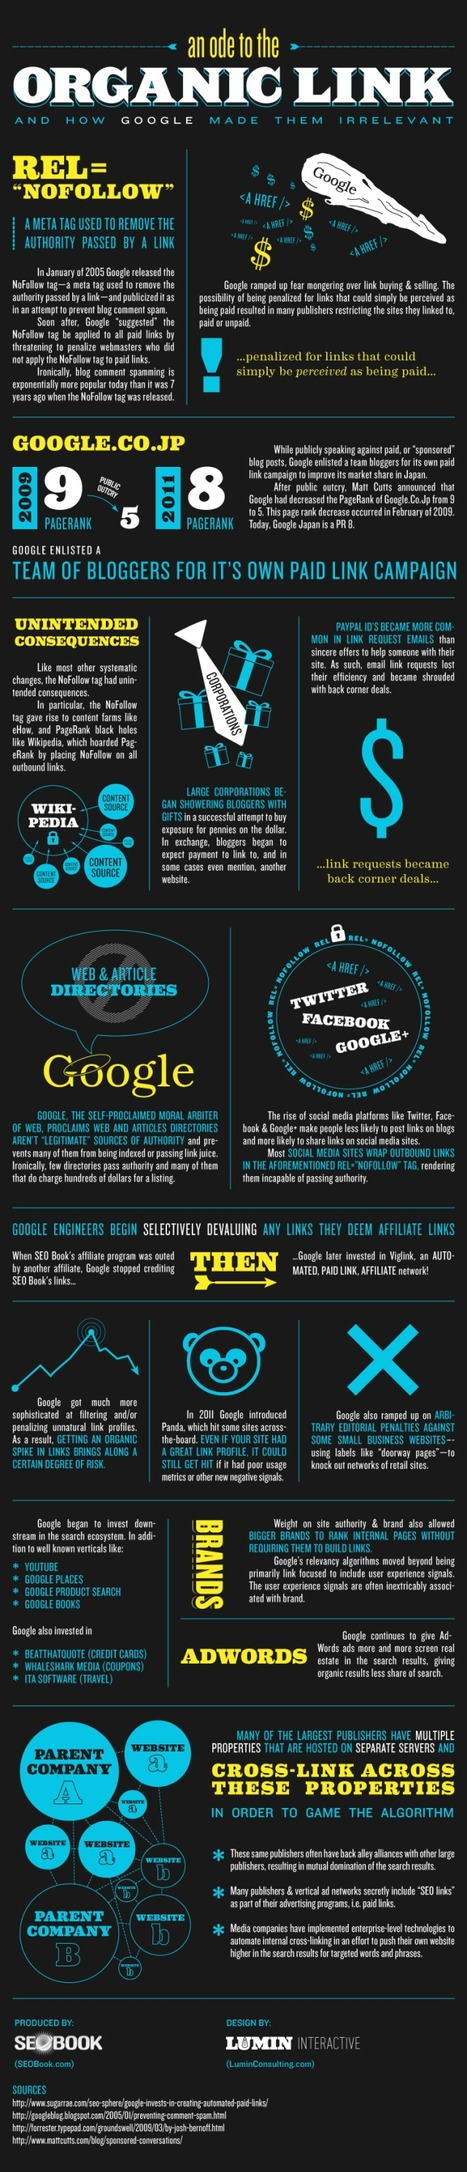 SEO Is Changing : The Decline of Organic Links Infographic | Curation Revolution | Scoop.it